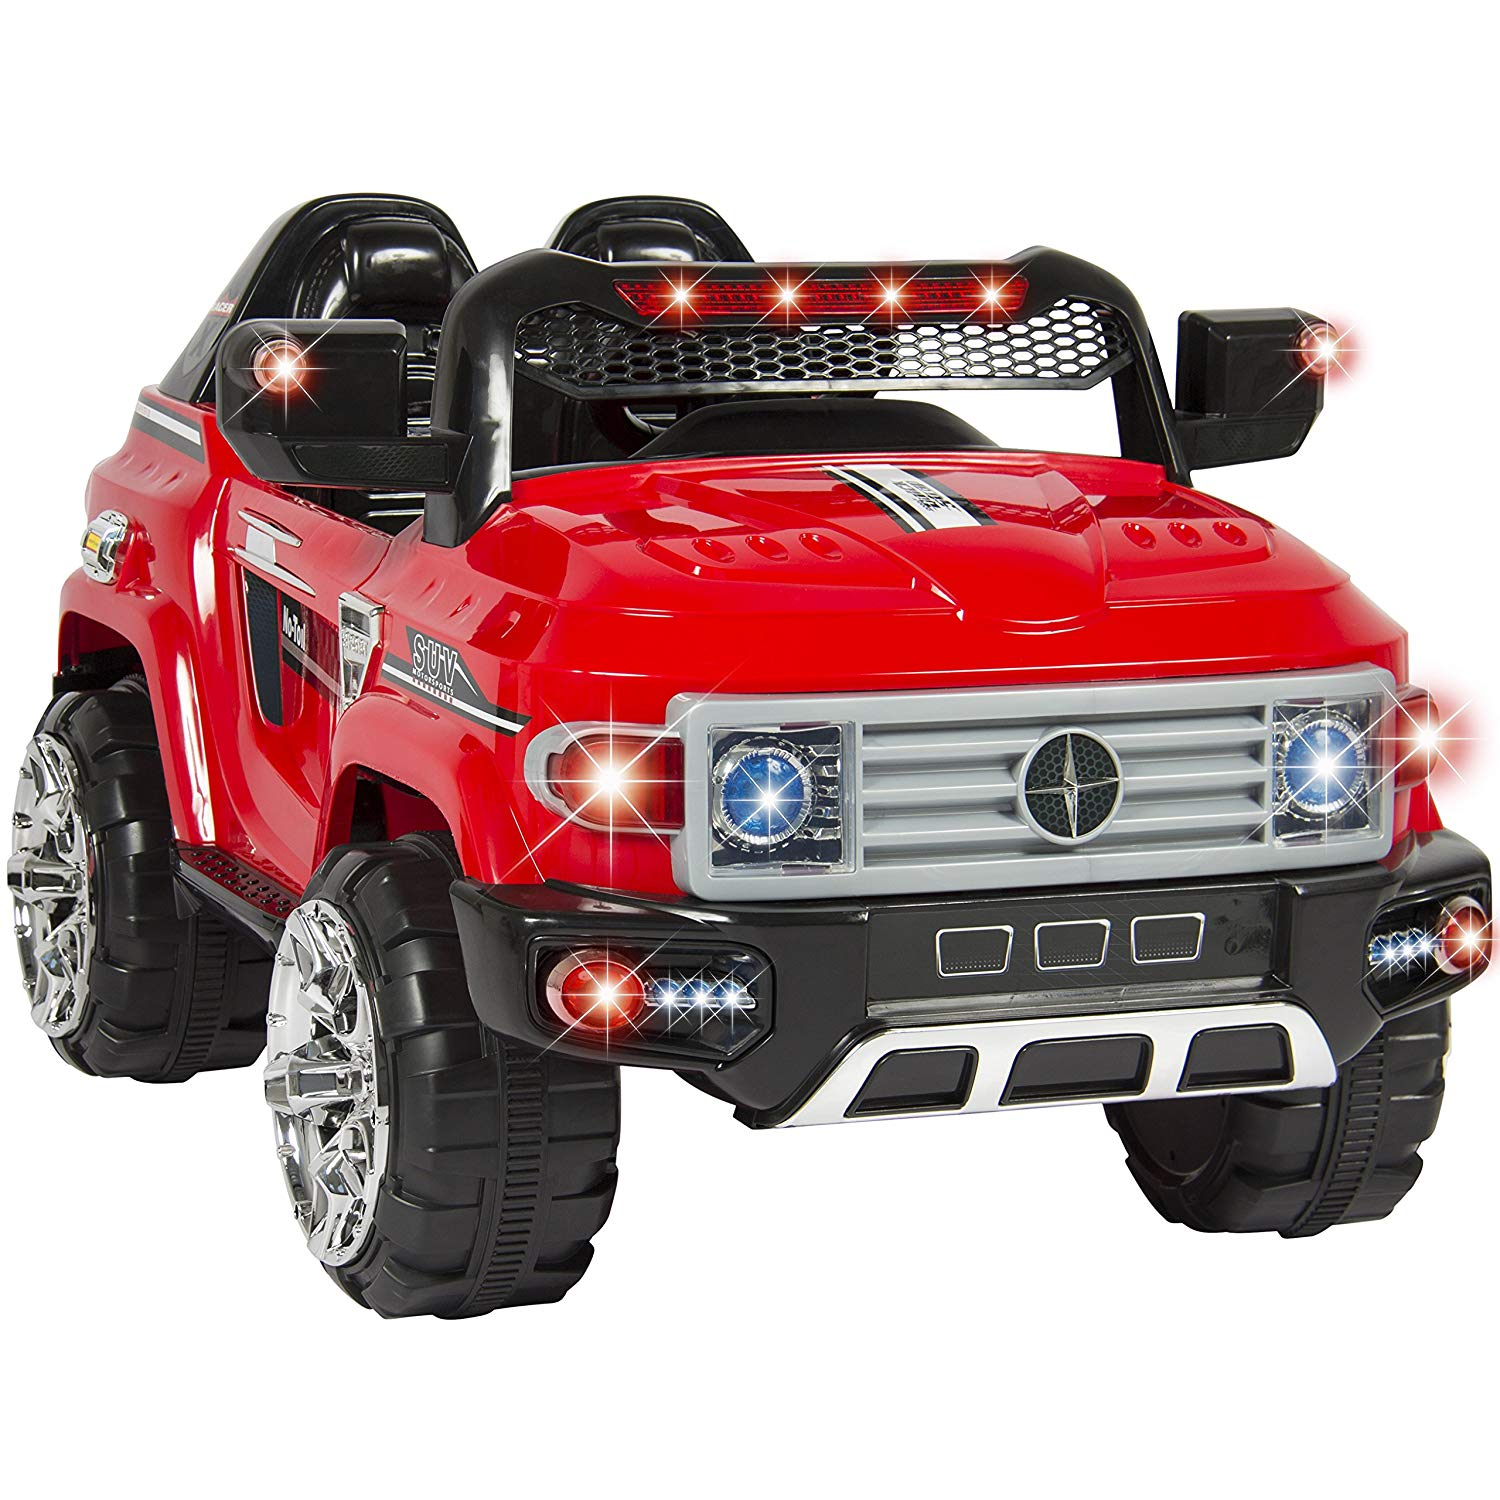 Toy Car for Child Unique Best Choice Products 12v Kids Rc Remote Control Truck